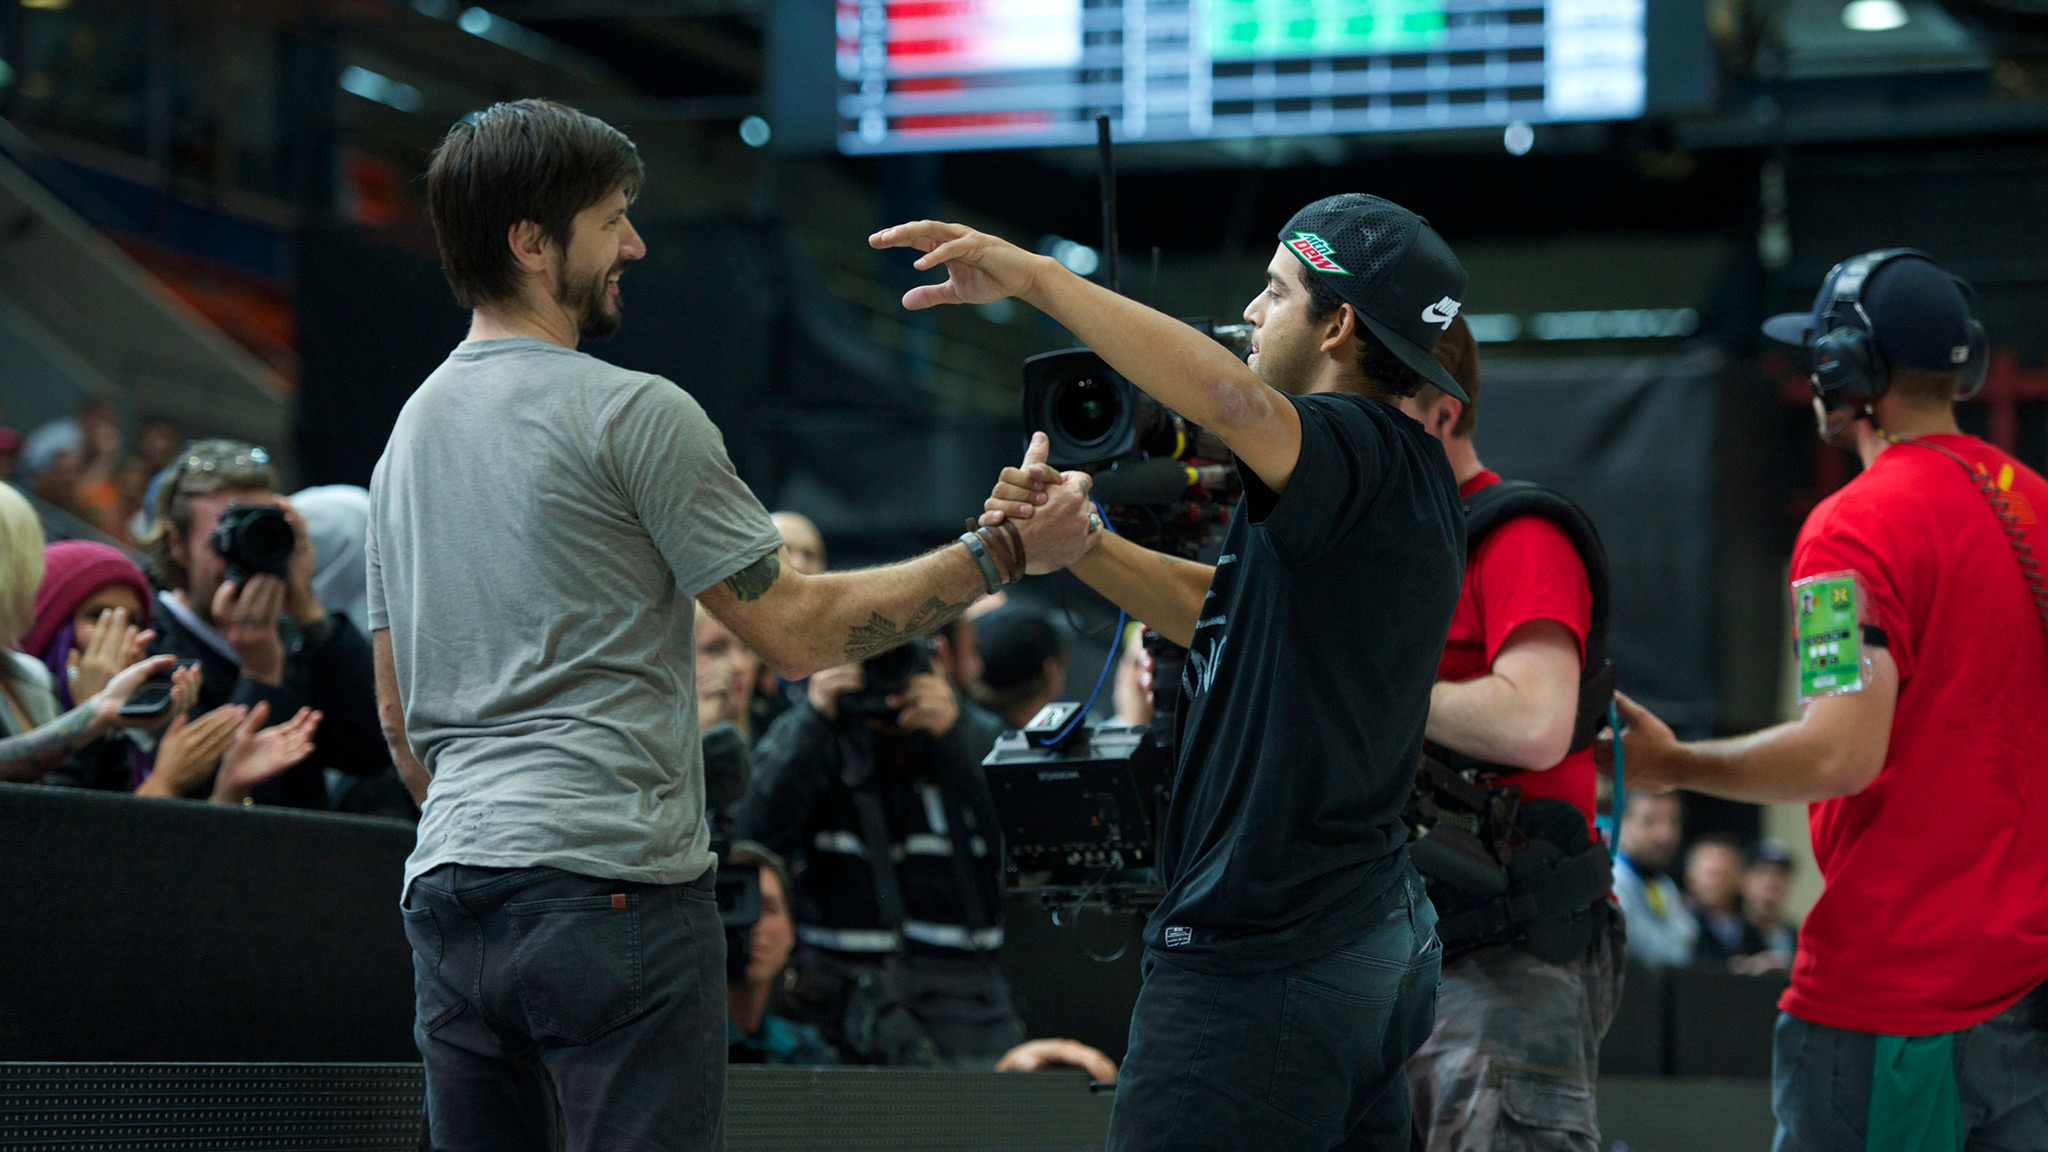 Paul Rodriguez (right) congratulates Chris Cole after Cole won the Street League Series contest at X Games Munich. The two will compete against Nyjah Huston, who missed Munich with an injury, in L.A.